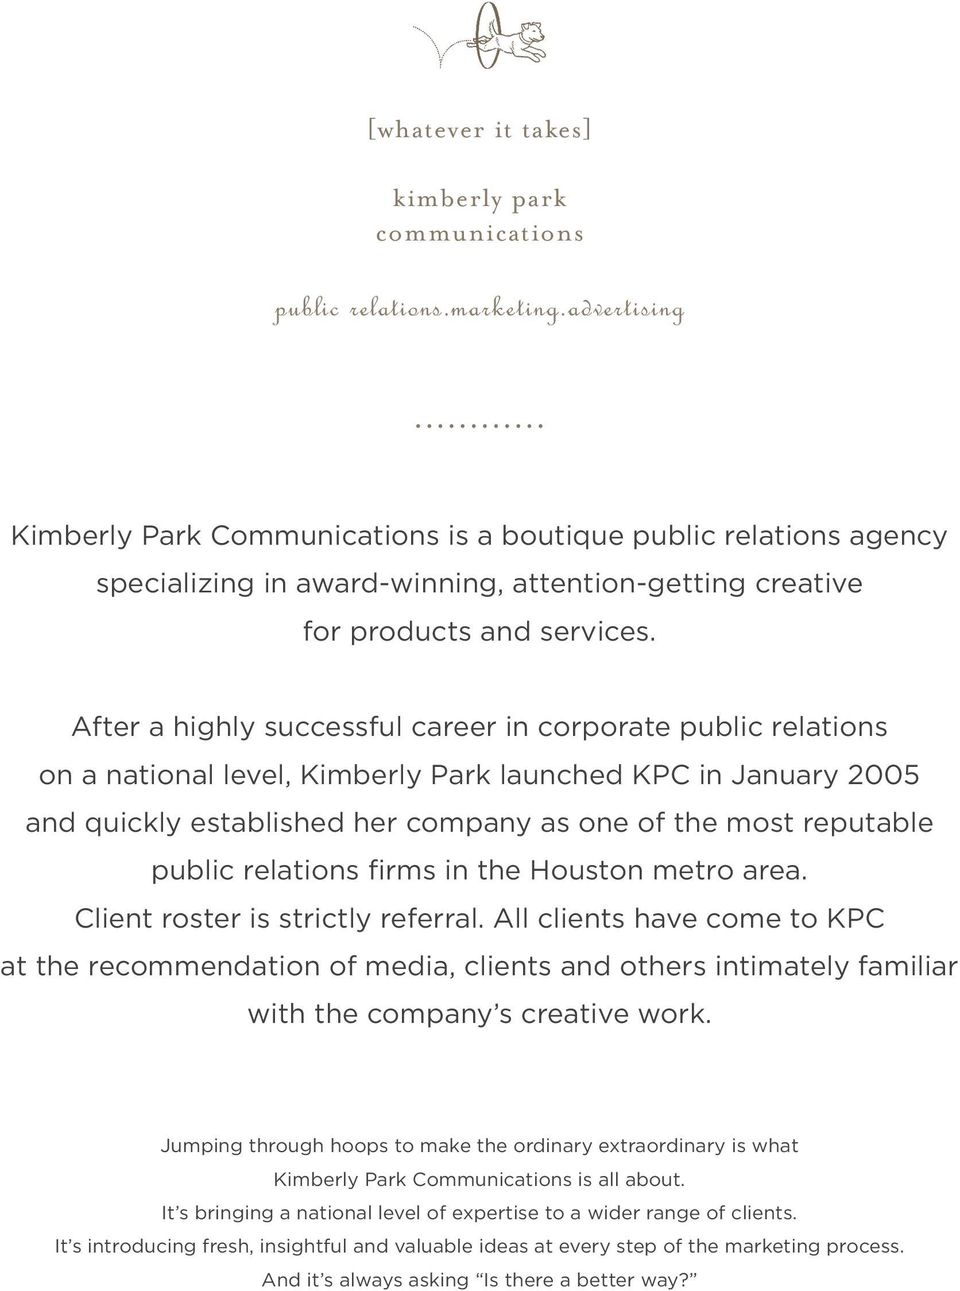 After a highly successful career in corporate public relations on a national level, Kimberly Park launched KPC in January 2005 and quickly established her company as one of the most reputable public